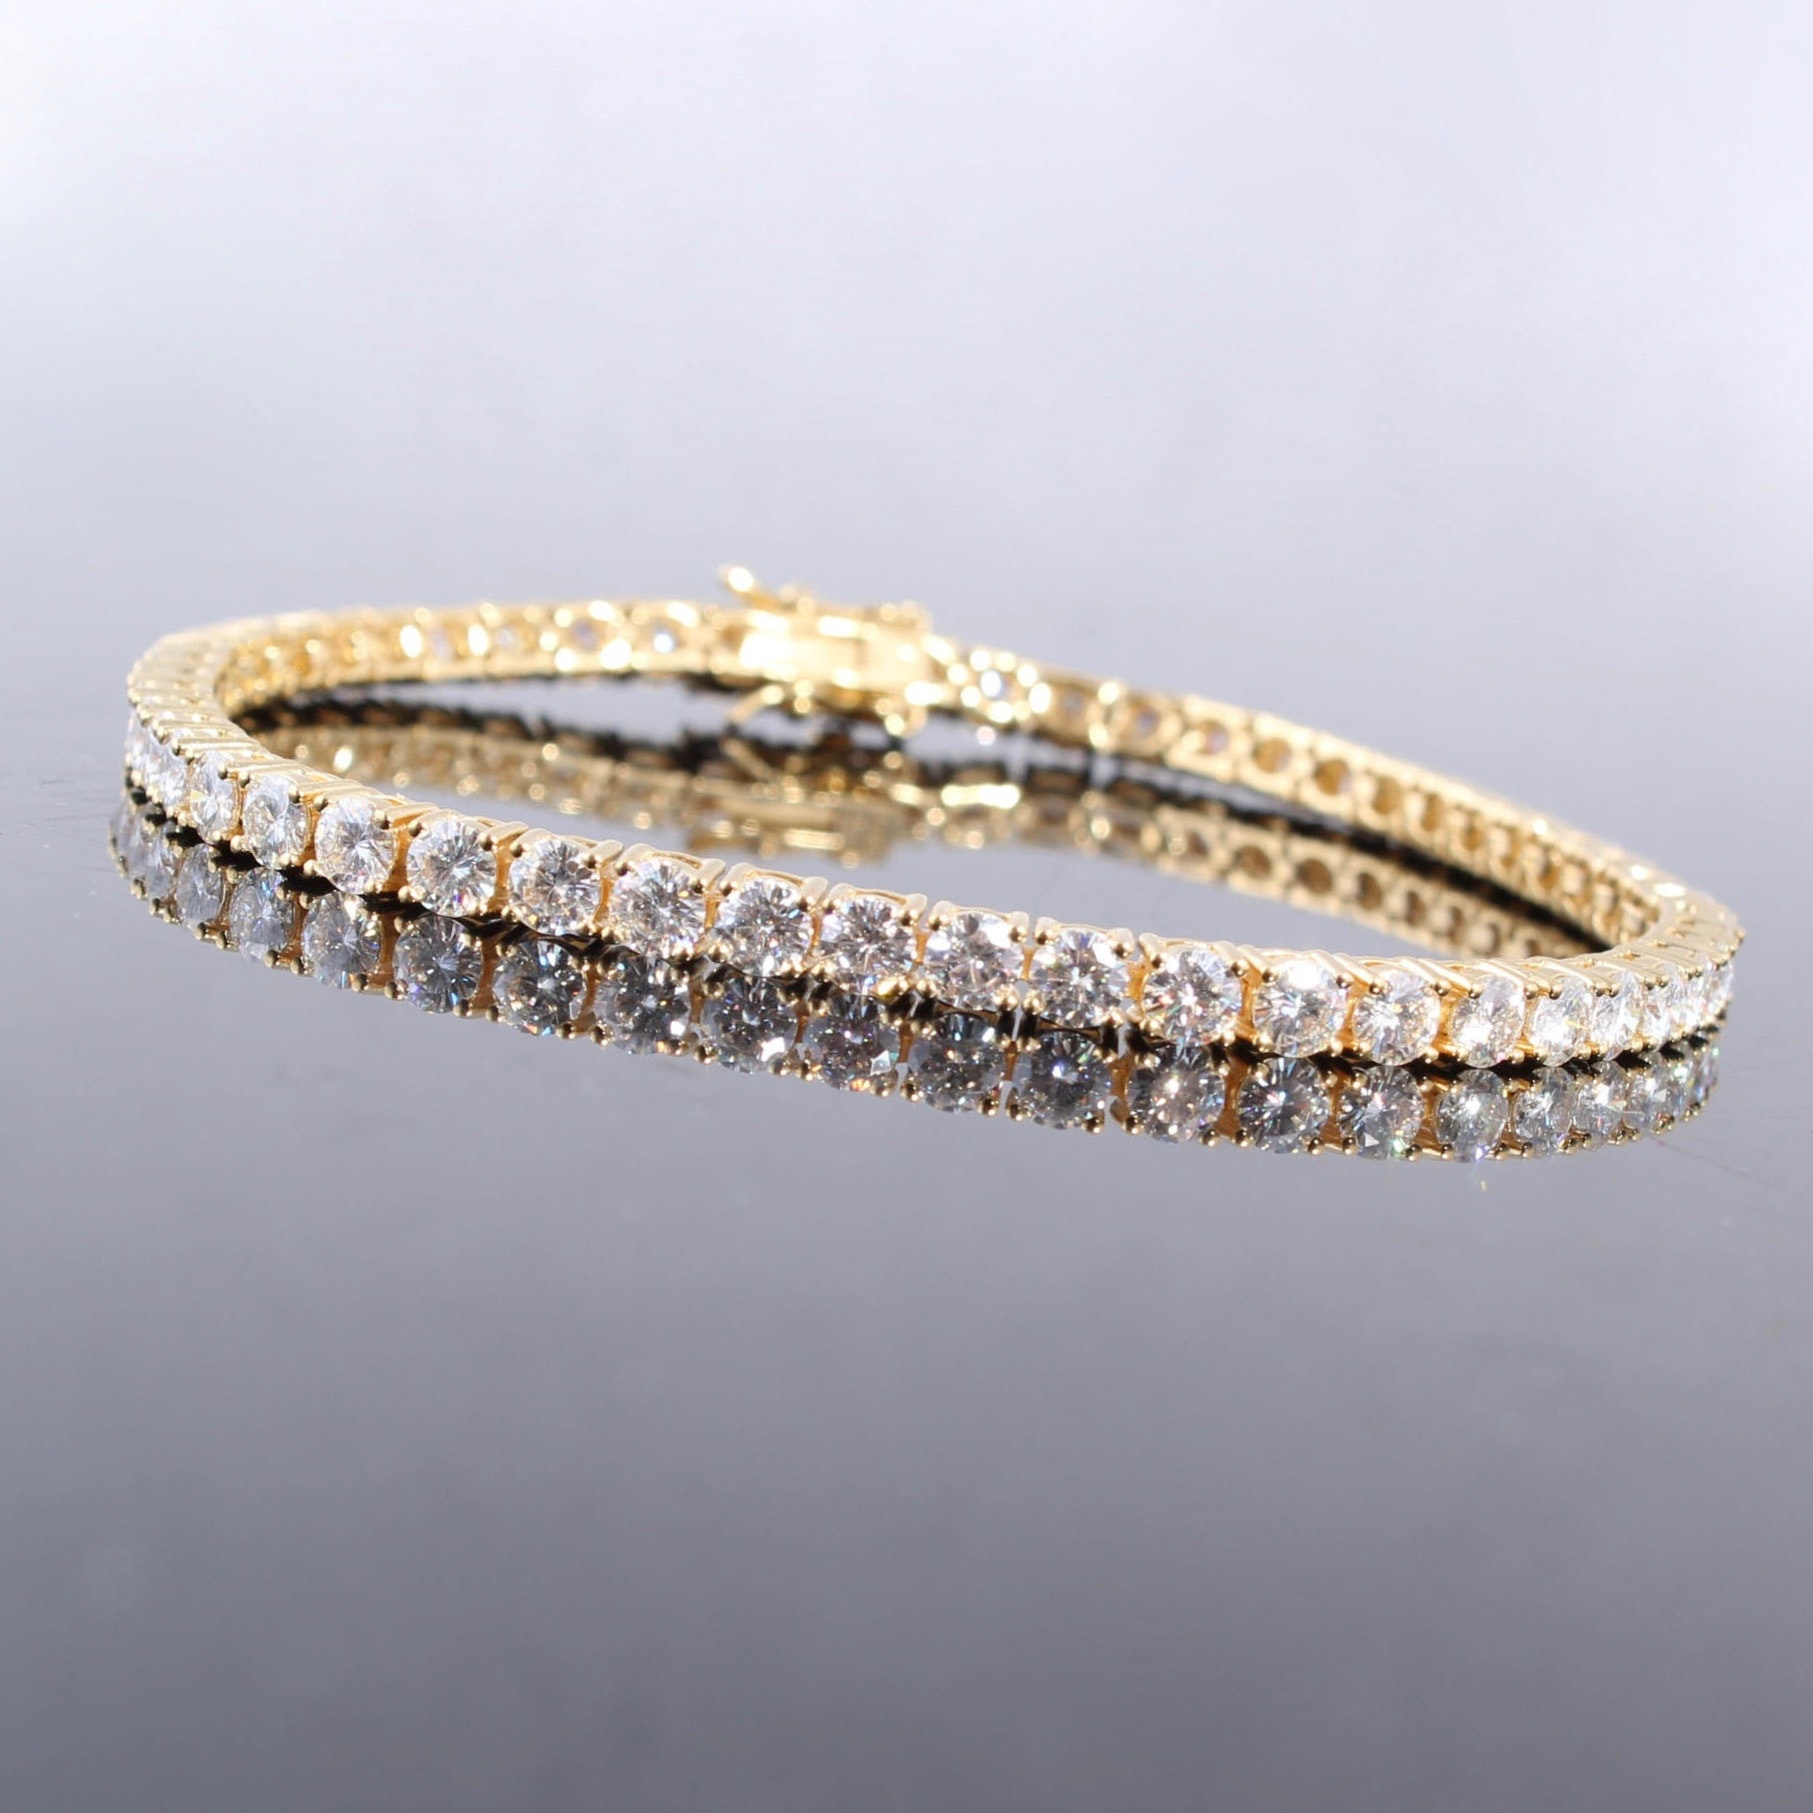 Sterling Silver with Gold Wash and Moissanite Tennis Bracelet